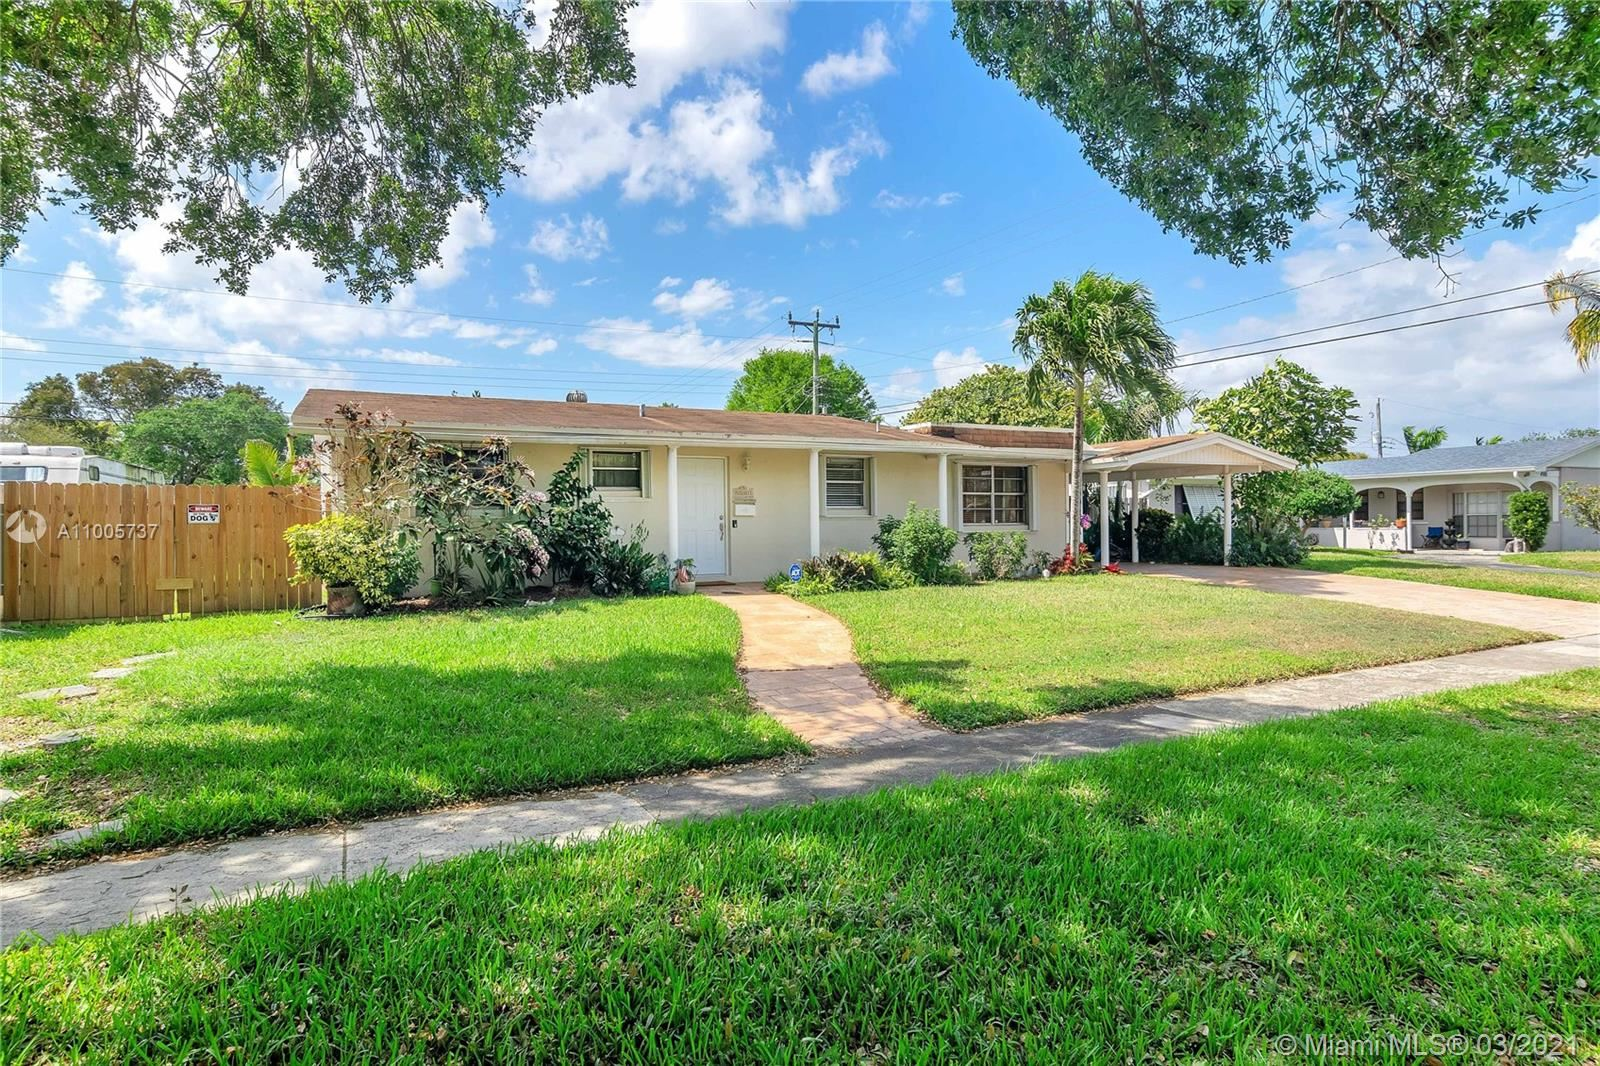 5001 SW 91st Ave, Cooper City, FL 33328 - #: A11005737